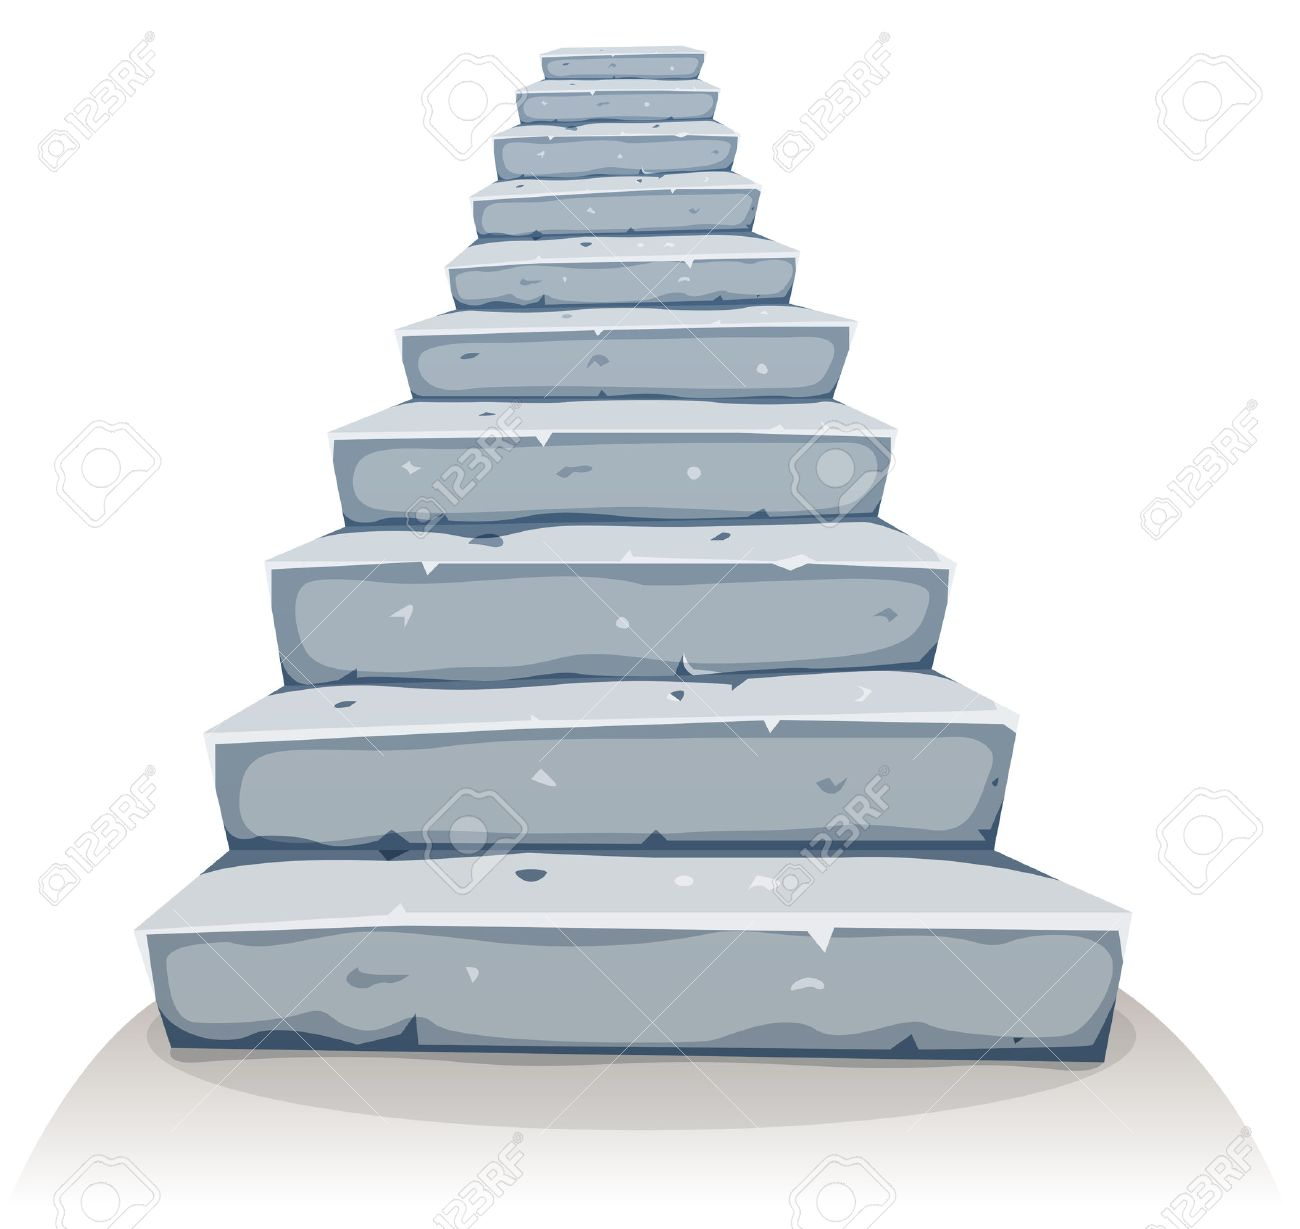 Illustration Of A Cartoon Funny Rock And Stone Stairway For Castle Royalty Free Cliparts Vectors And Stock Illustration Image 37377388